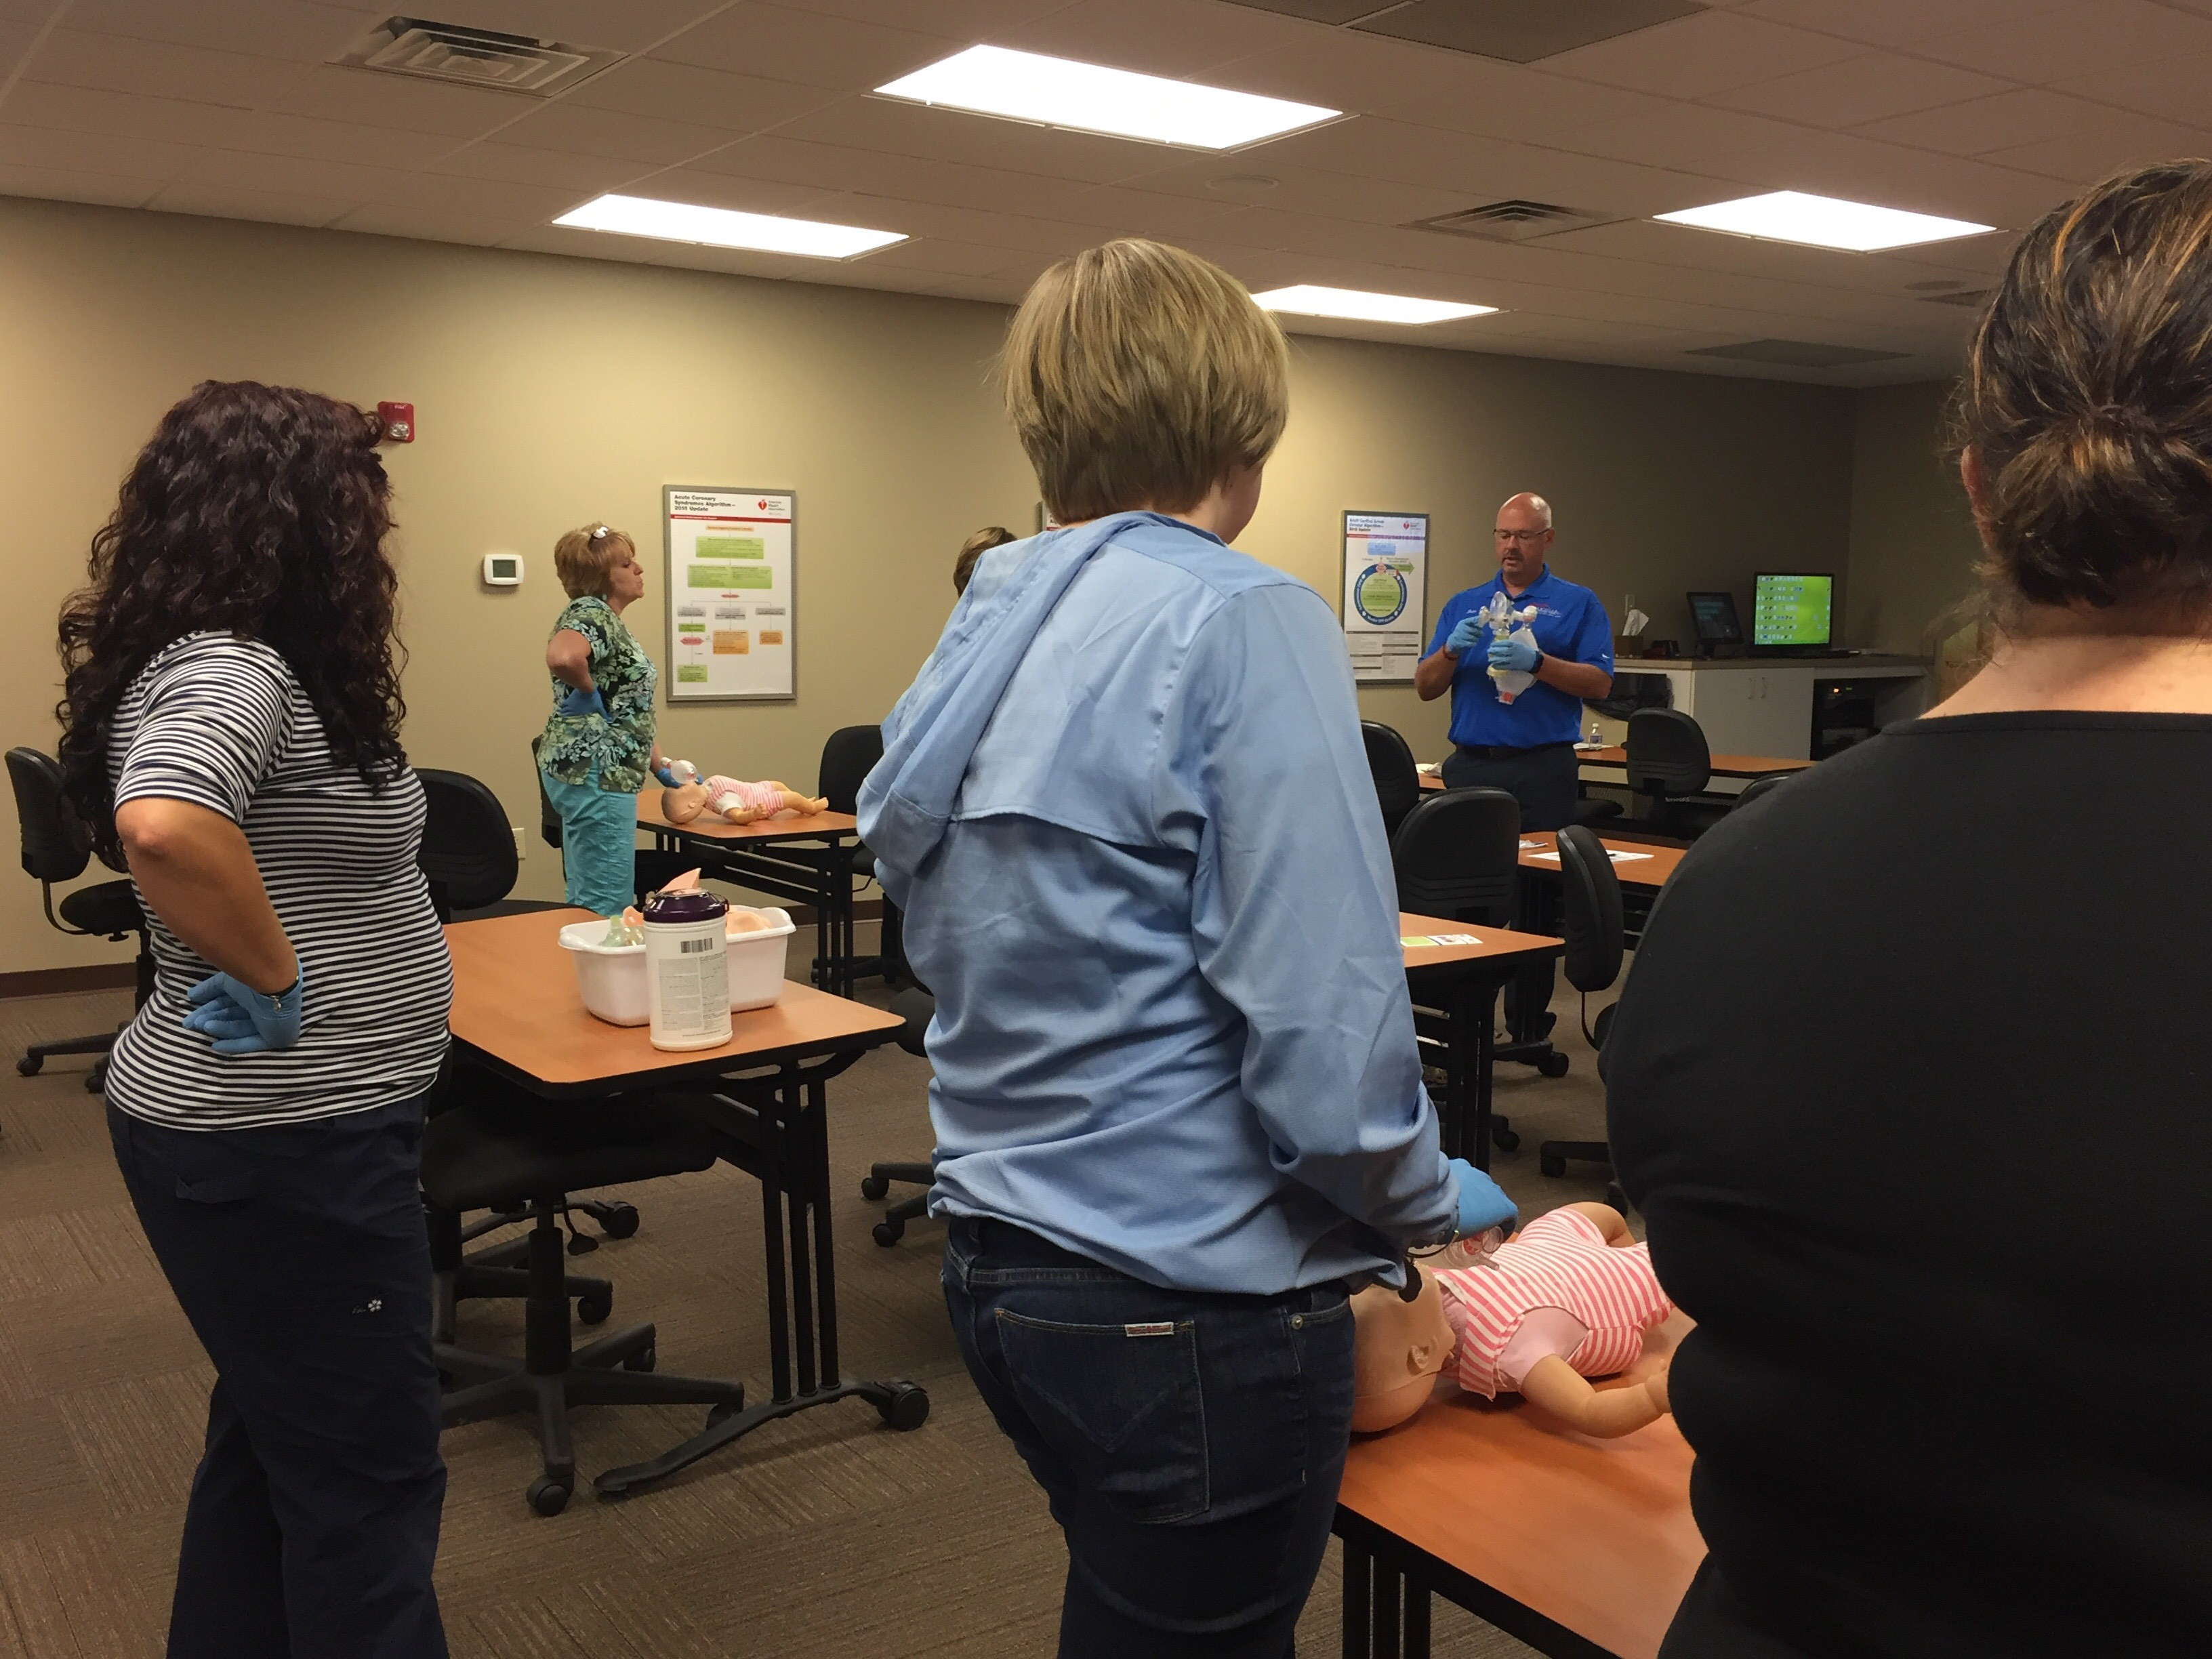 CPR classes take place each week